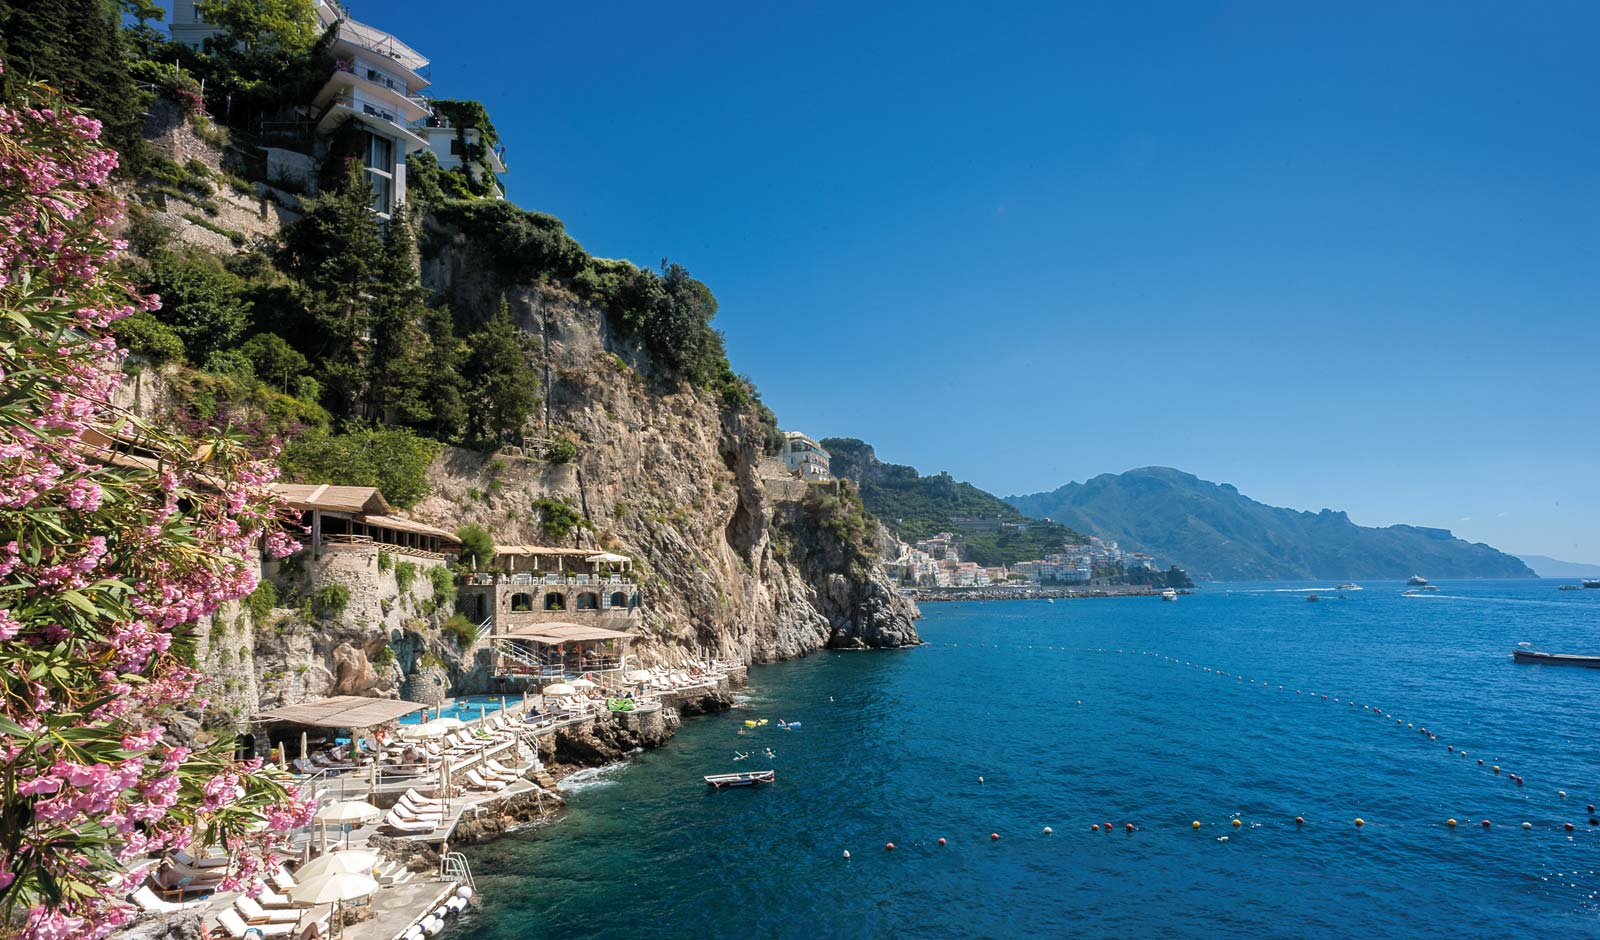 Private Beach On The Amalfi Coast Hotel Santa Caterina